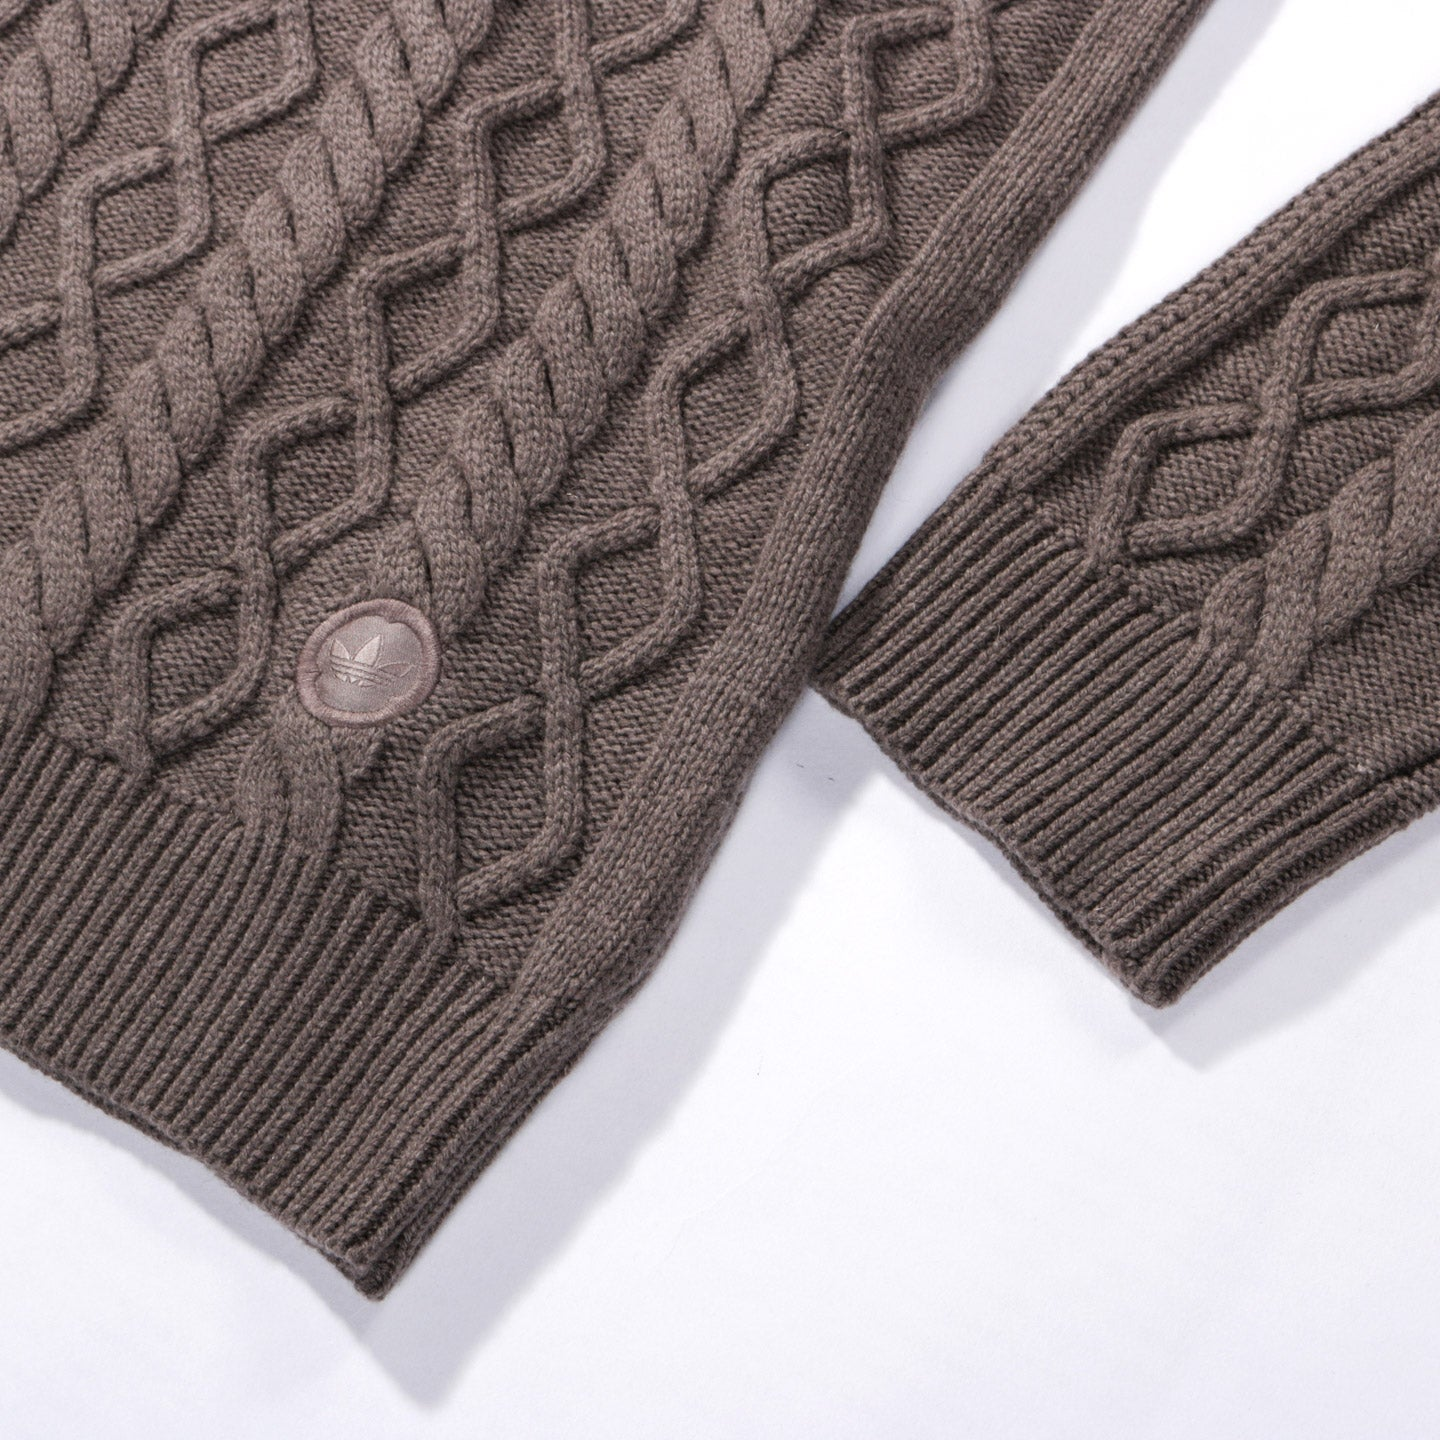 b8397bfc1bf71 ADIDAS ORIGINALS BY WINGS + HORNS FELTED CREW NECK SWEATER SIMPLE BROWN